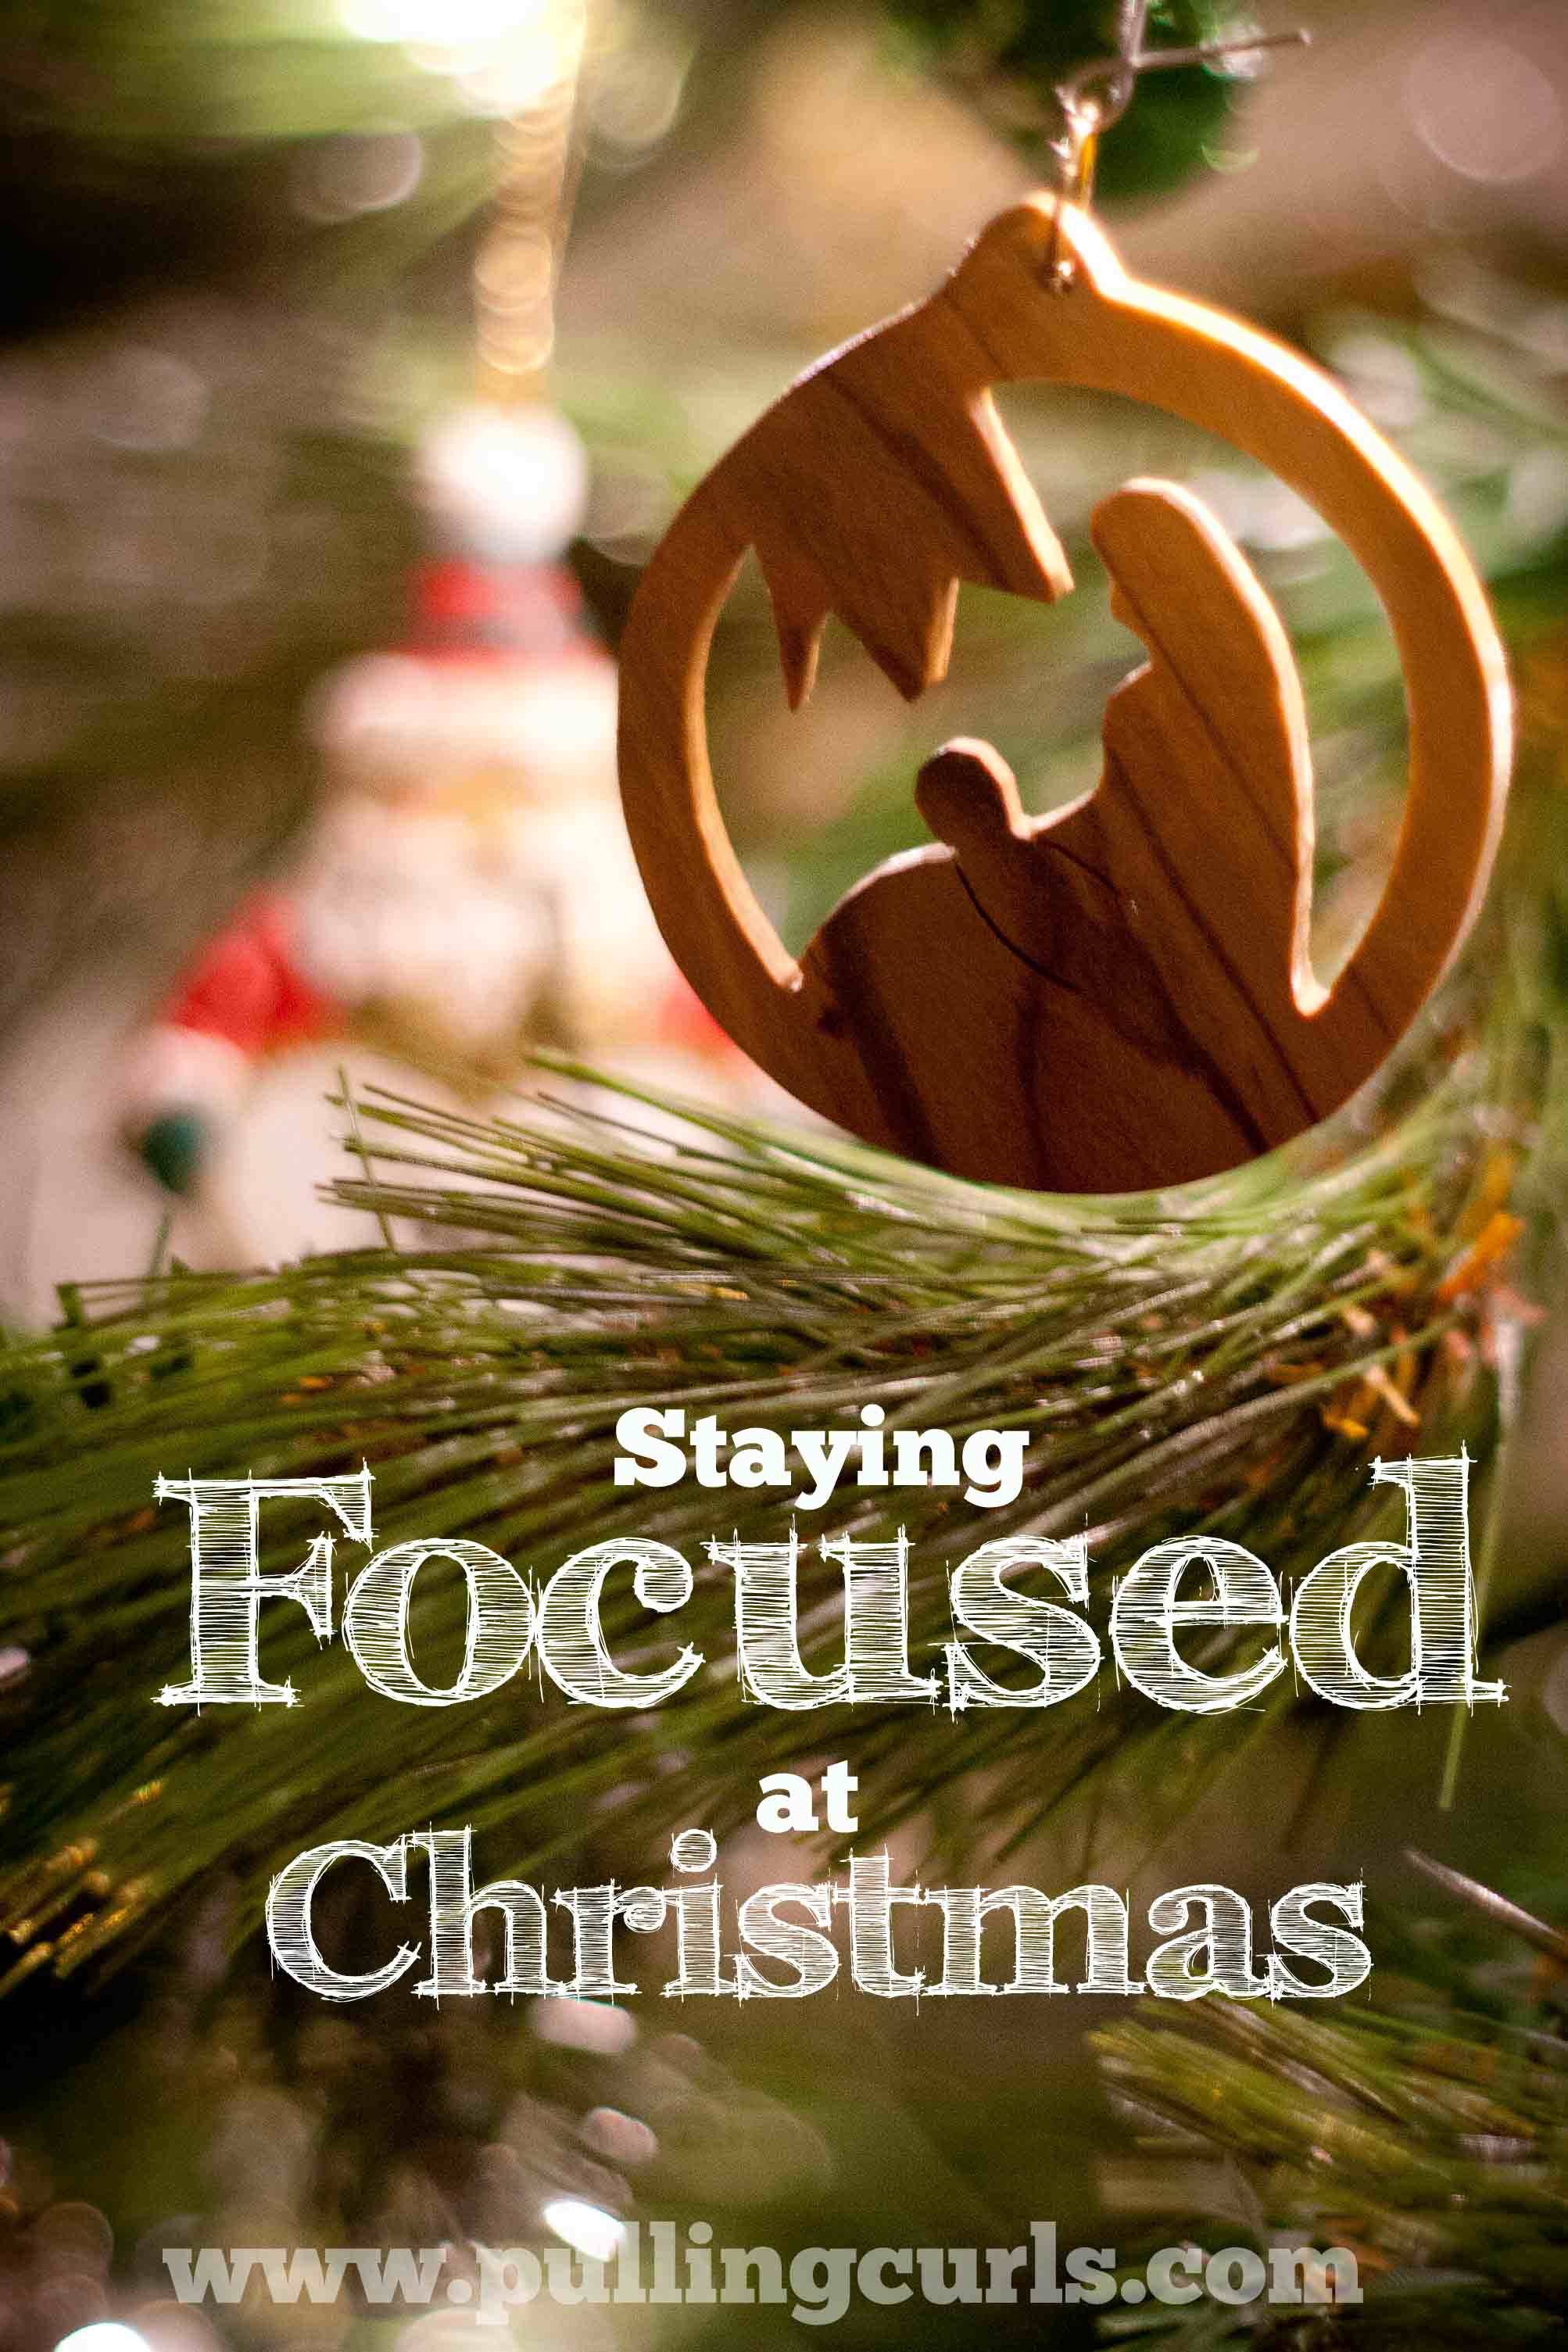 Decide what YOU want to focus on during Christmas, and then build your experience around it.